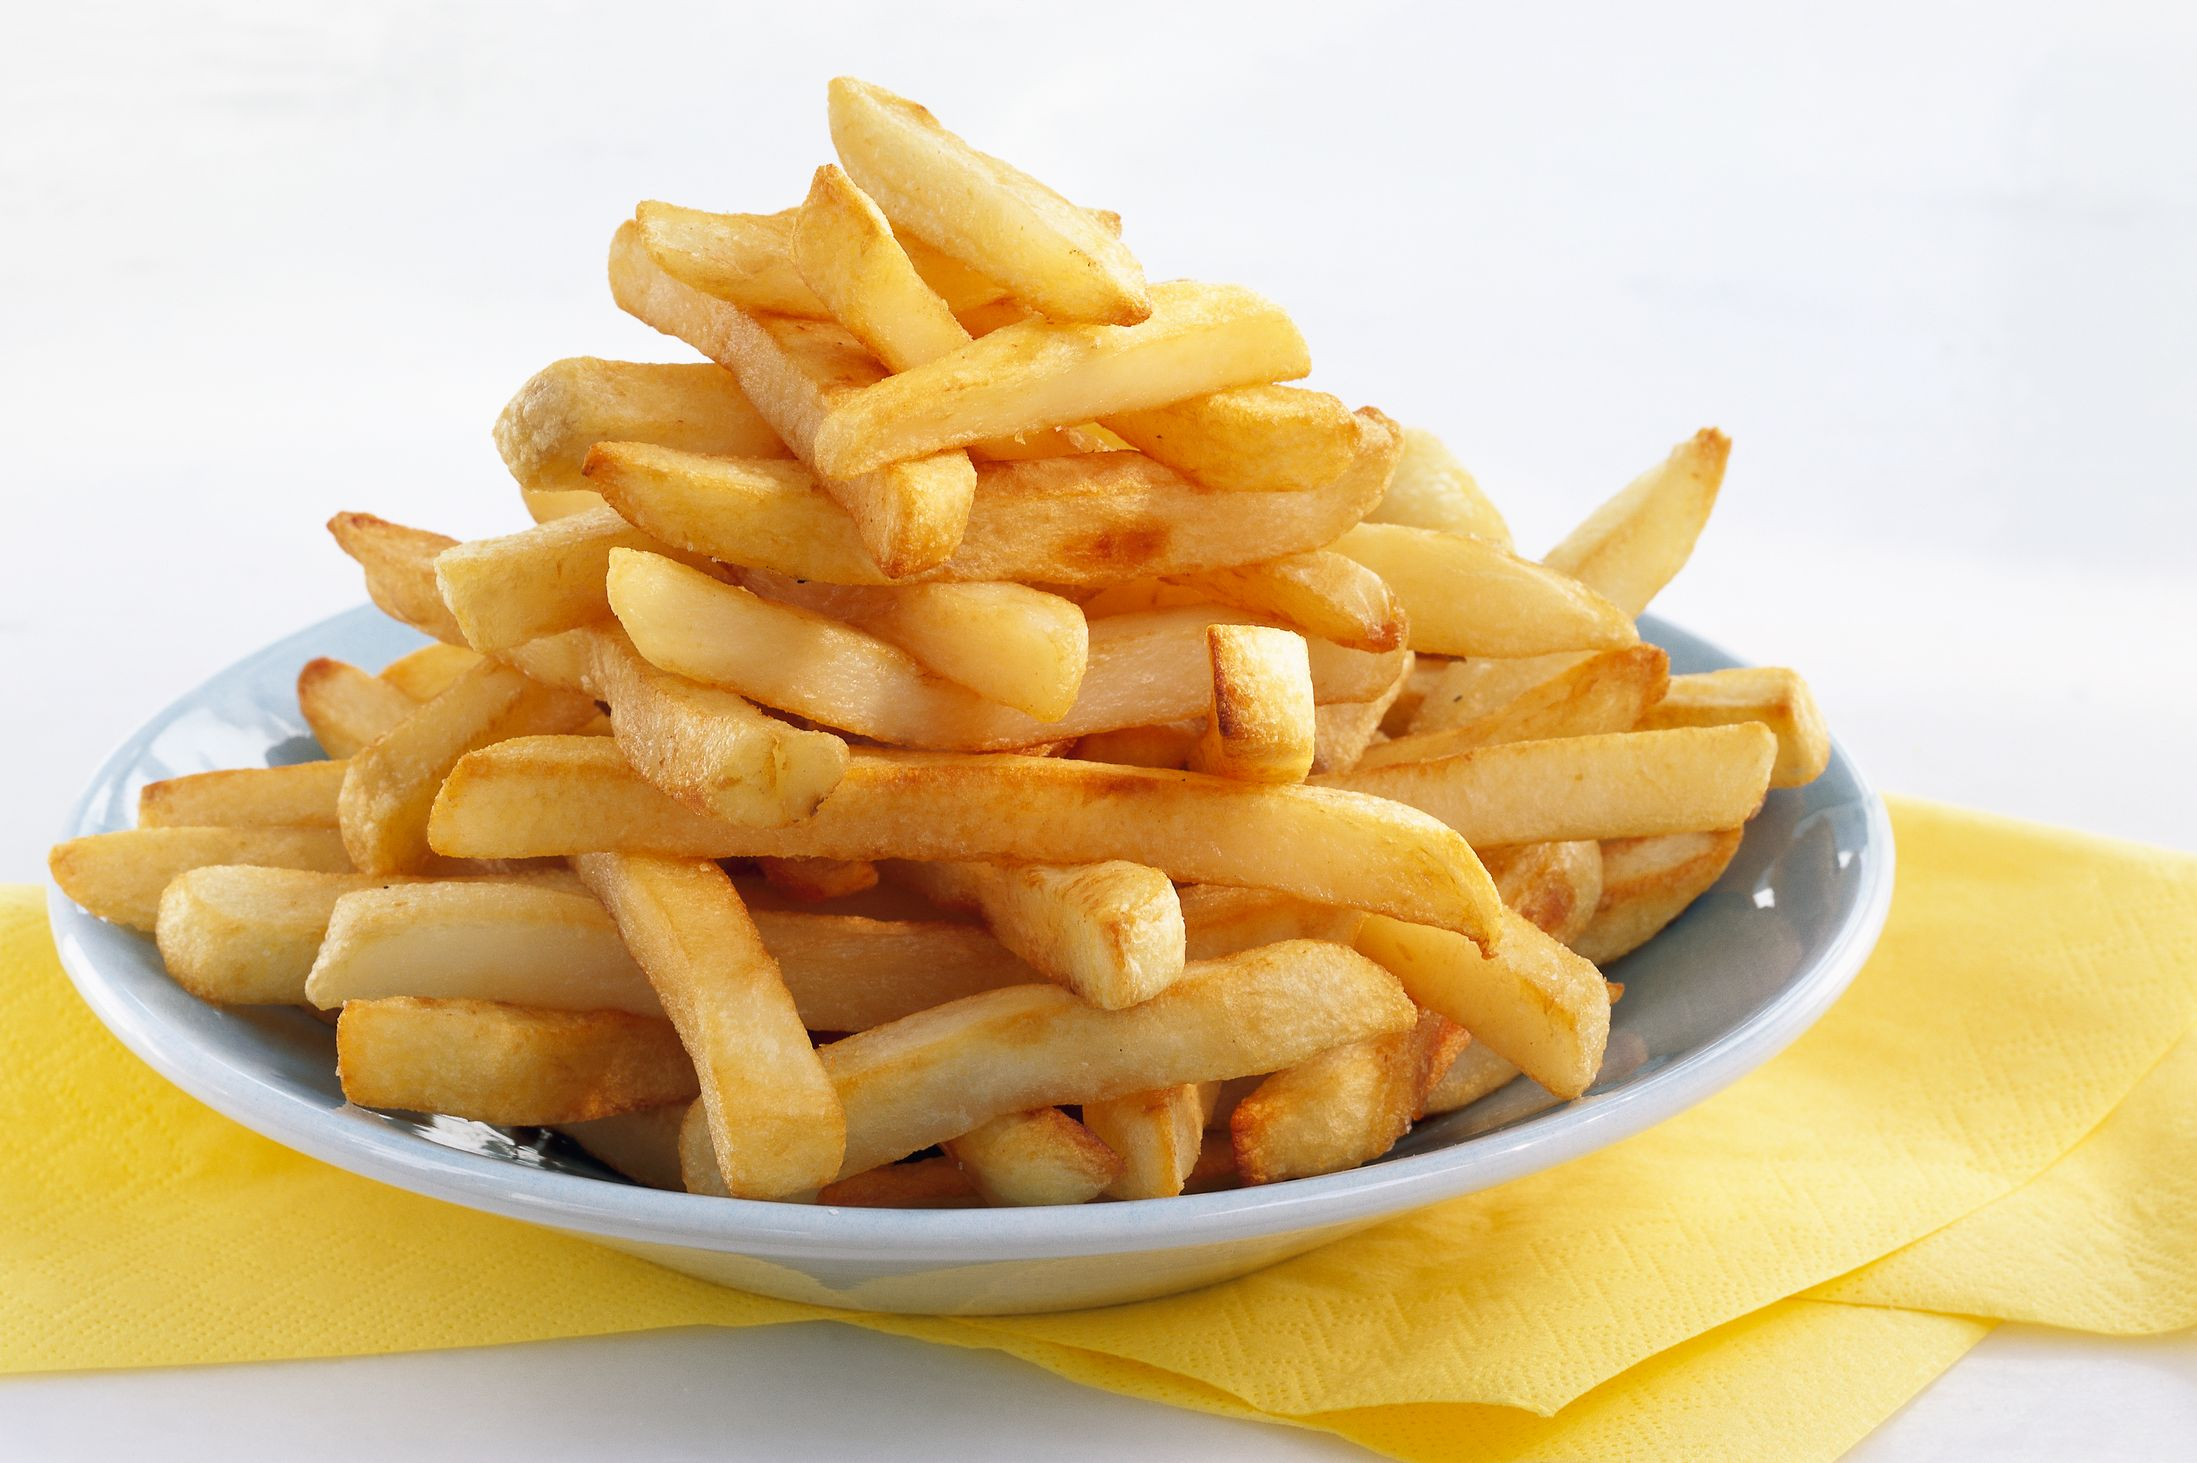 Chips1 - The Best Food for Successful First Date